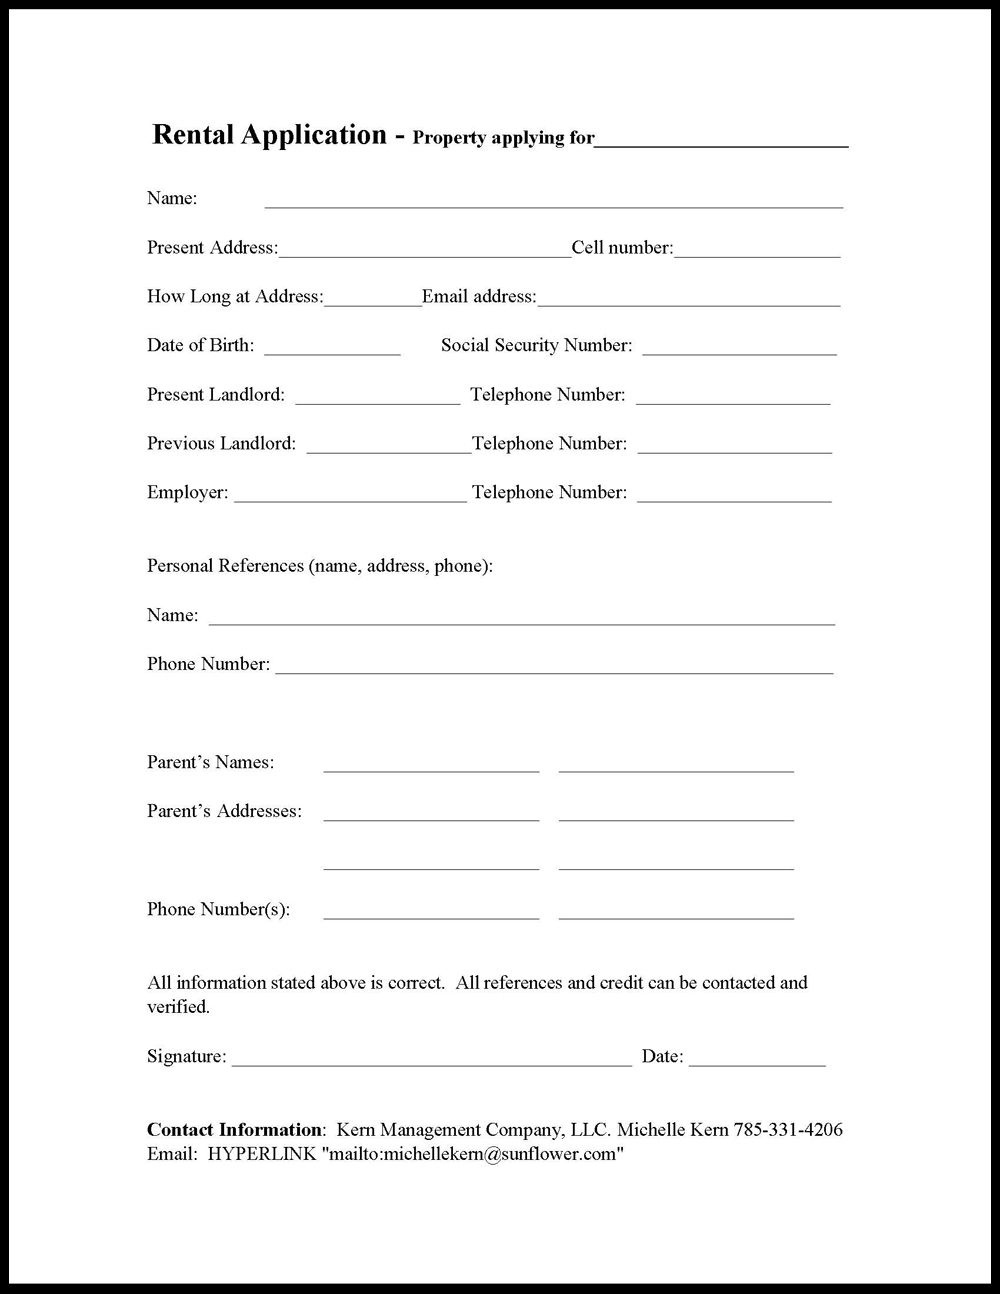 Kern Management | Houses For Rent | Forms/rentail Application - Free Printable House Rental Application Form